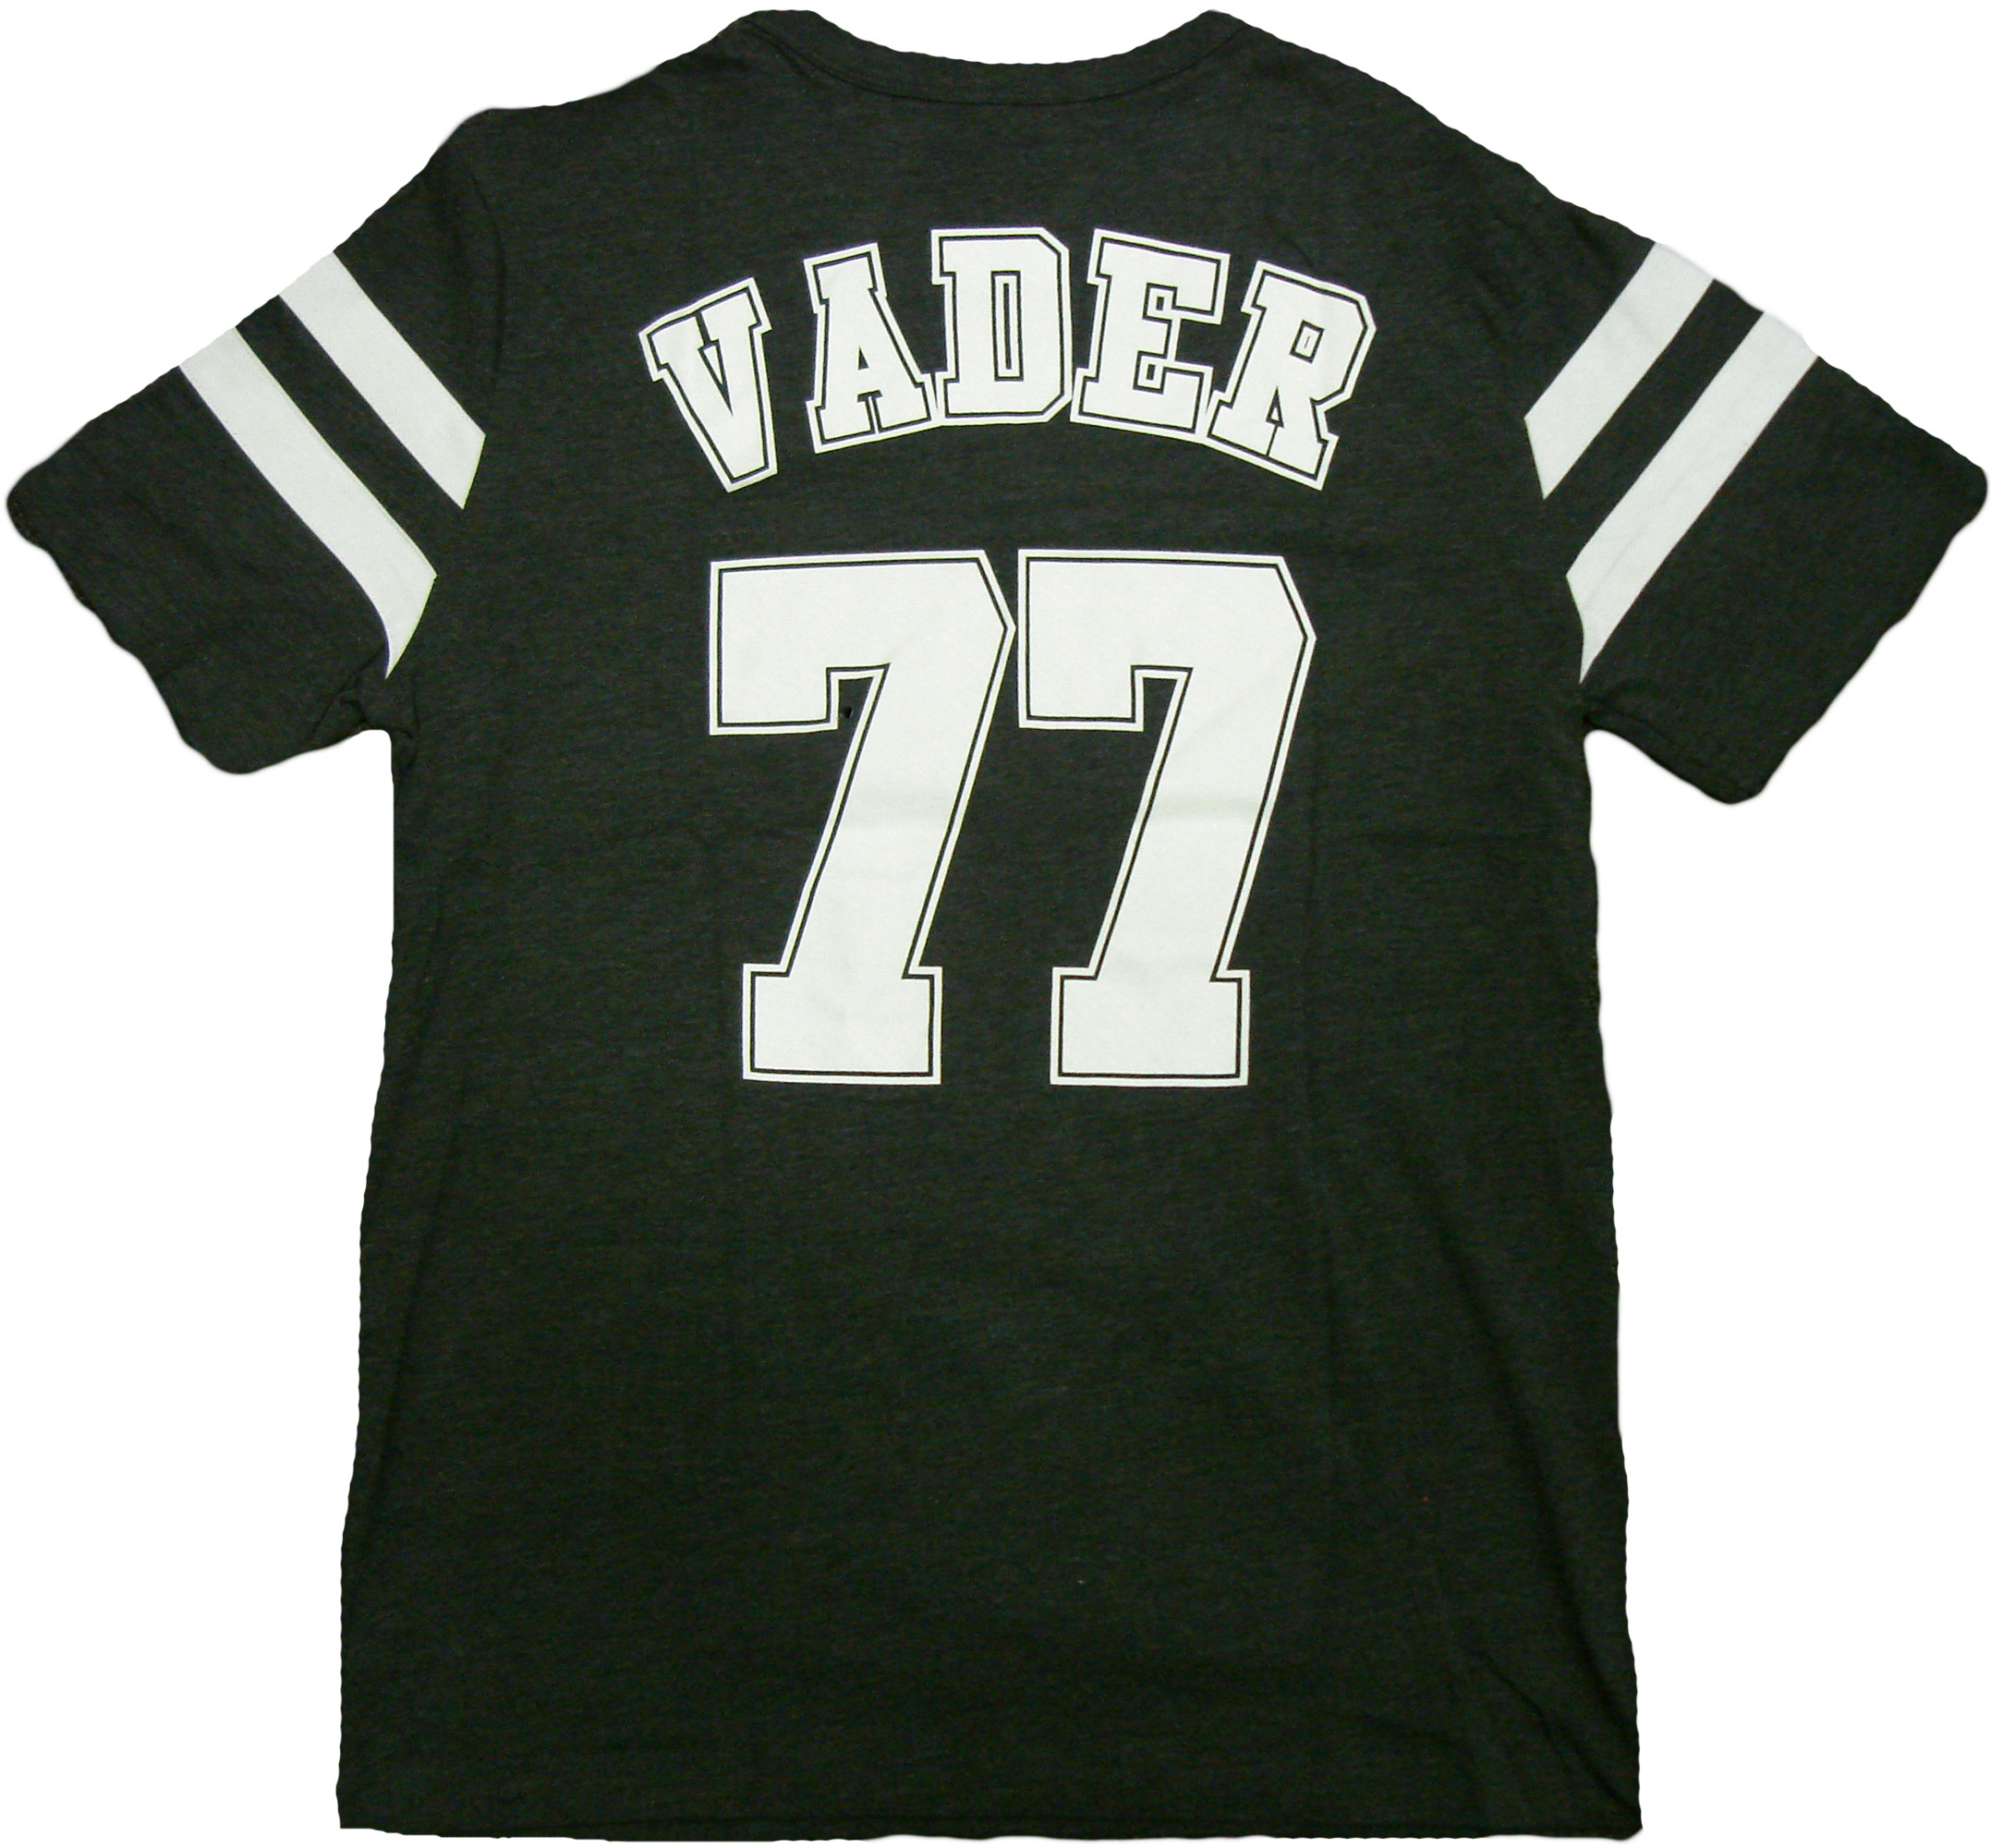 brand new 8f6a5 626b7 Details about Star Wars Vader 77 Varsity Double Sided Adult T-Shirt - Space  Galaxy Jedi Yoda